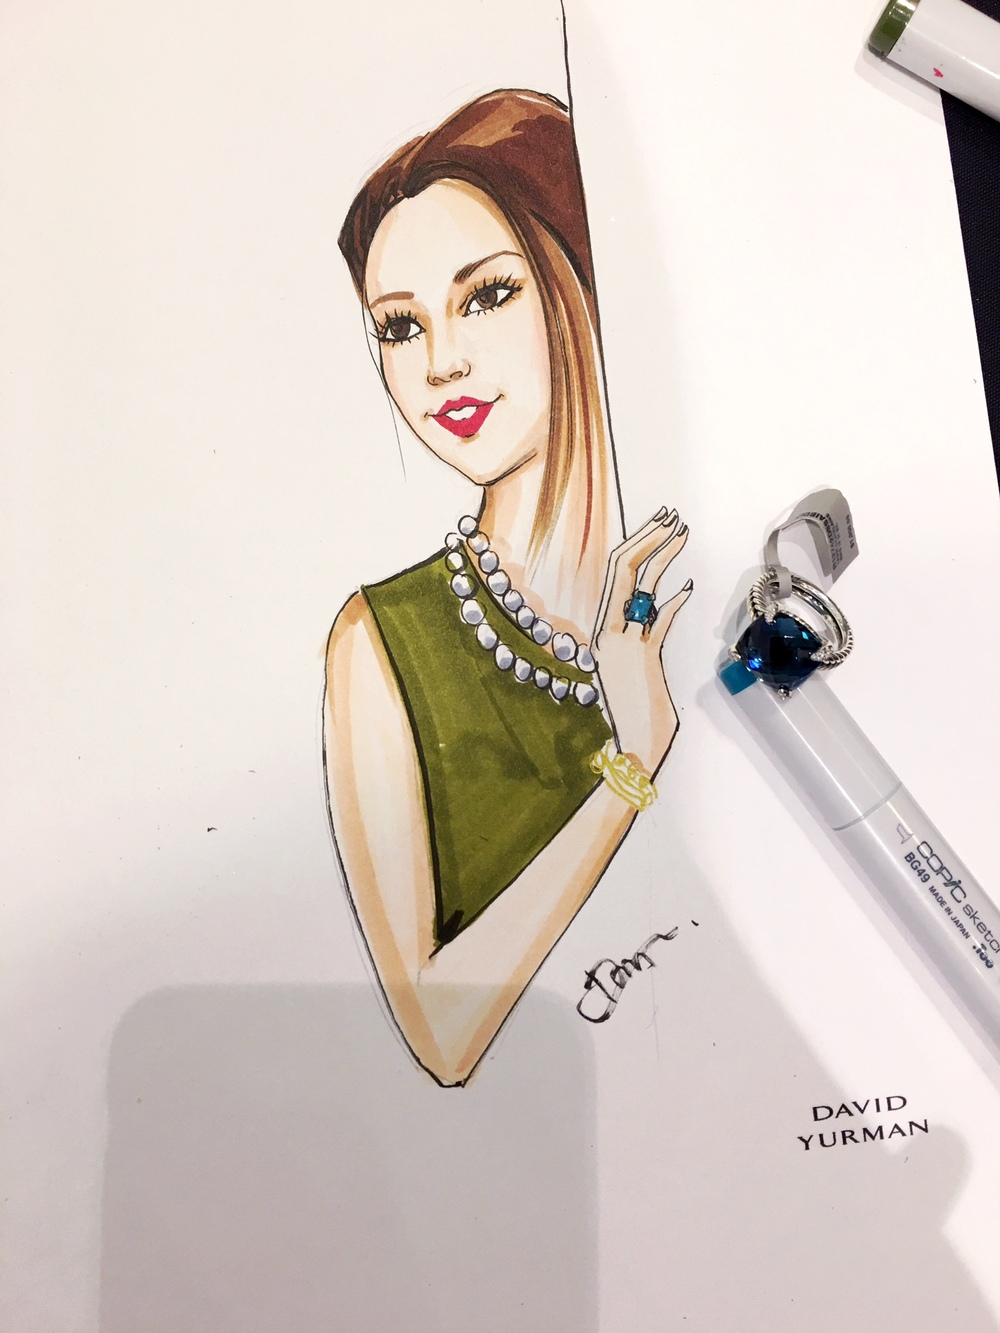 LA Live-sketch event for David Yurman